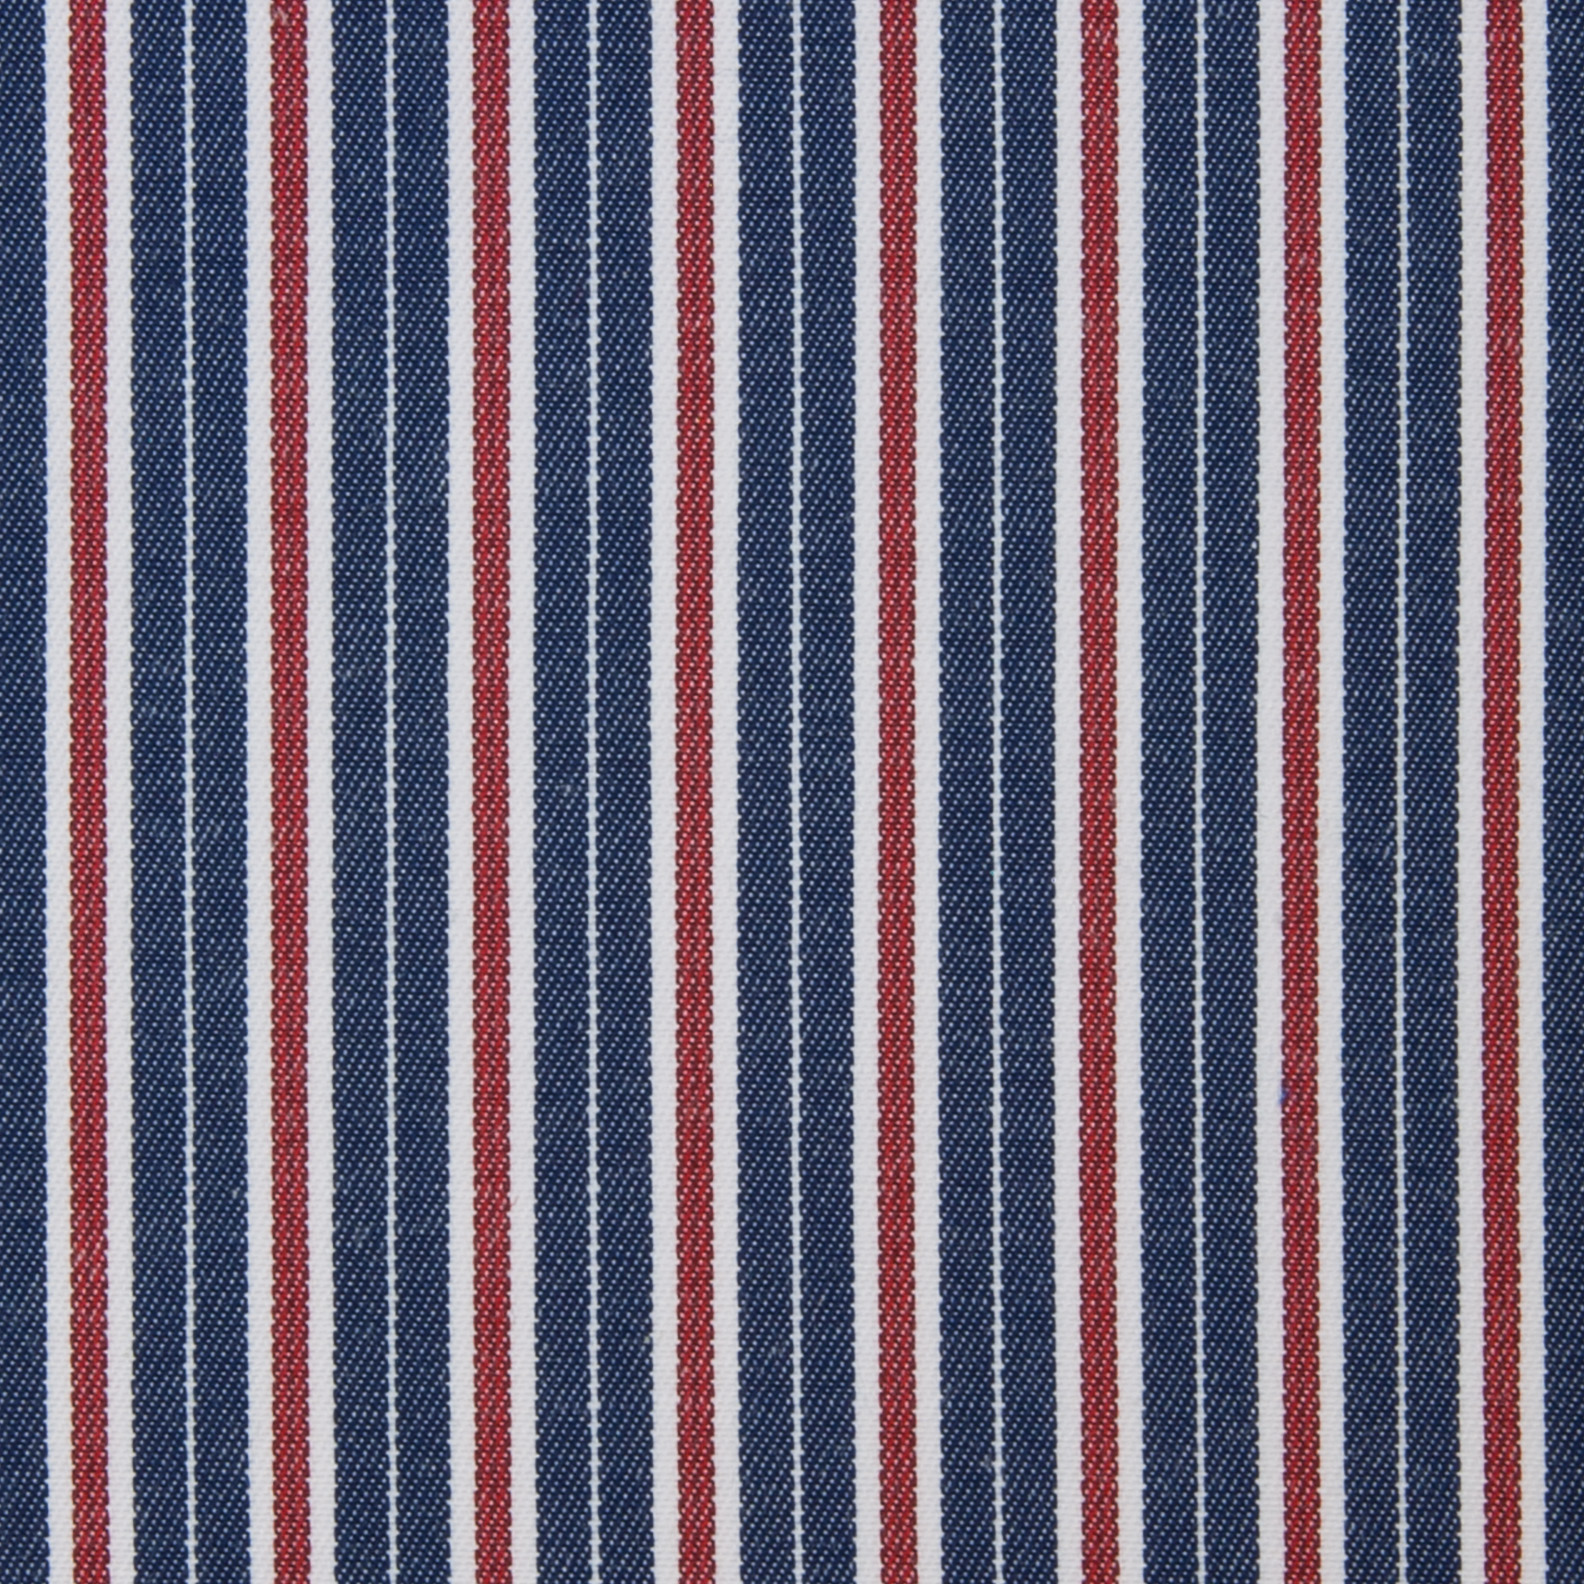 Buy tailor made shirts online - Arturo Collection - Red, White and Blue Stripes